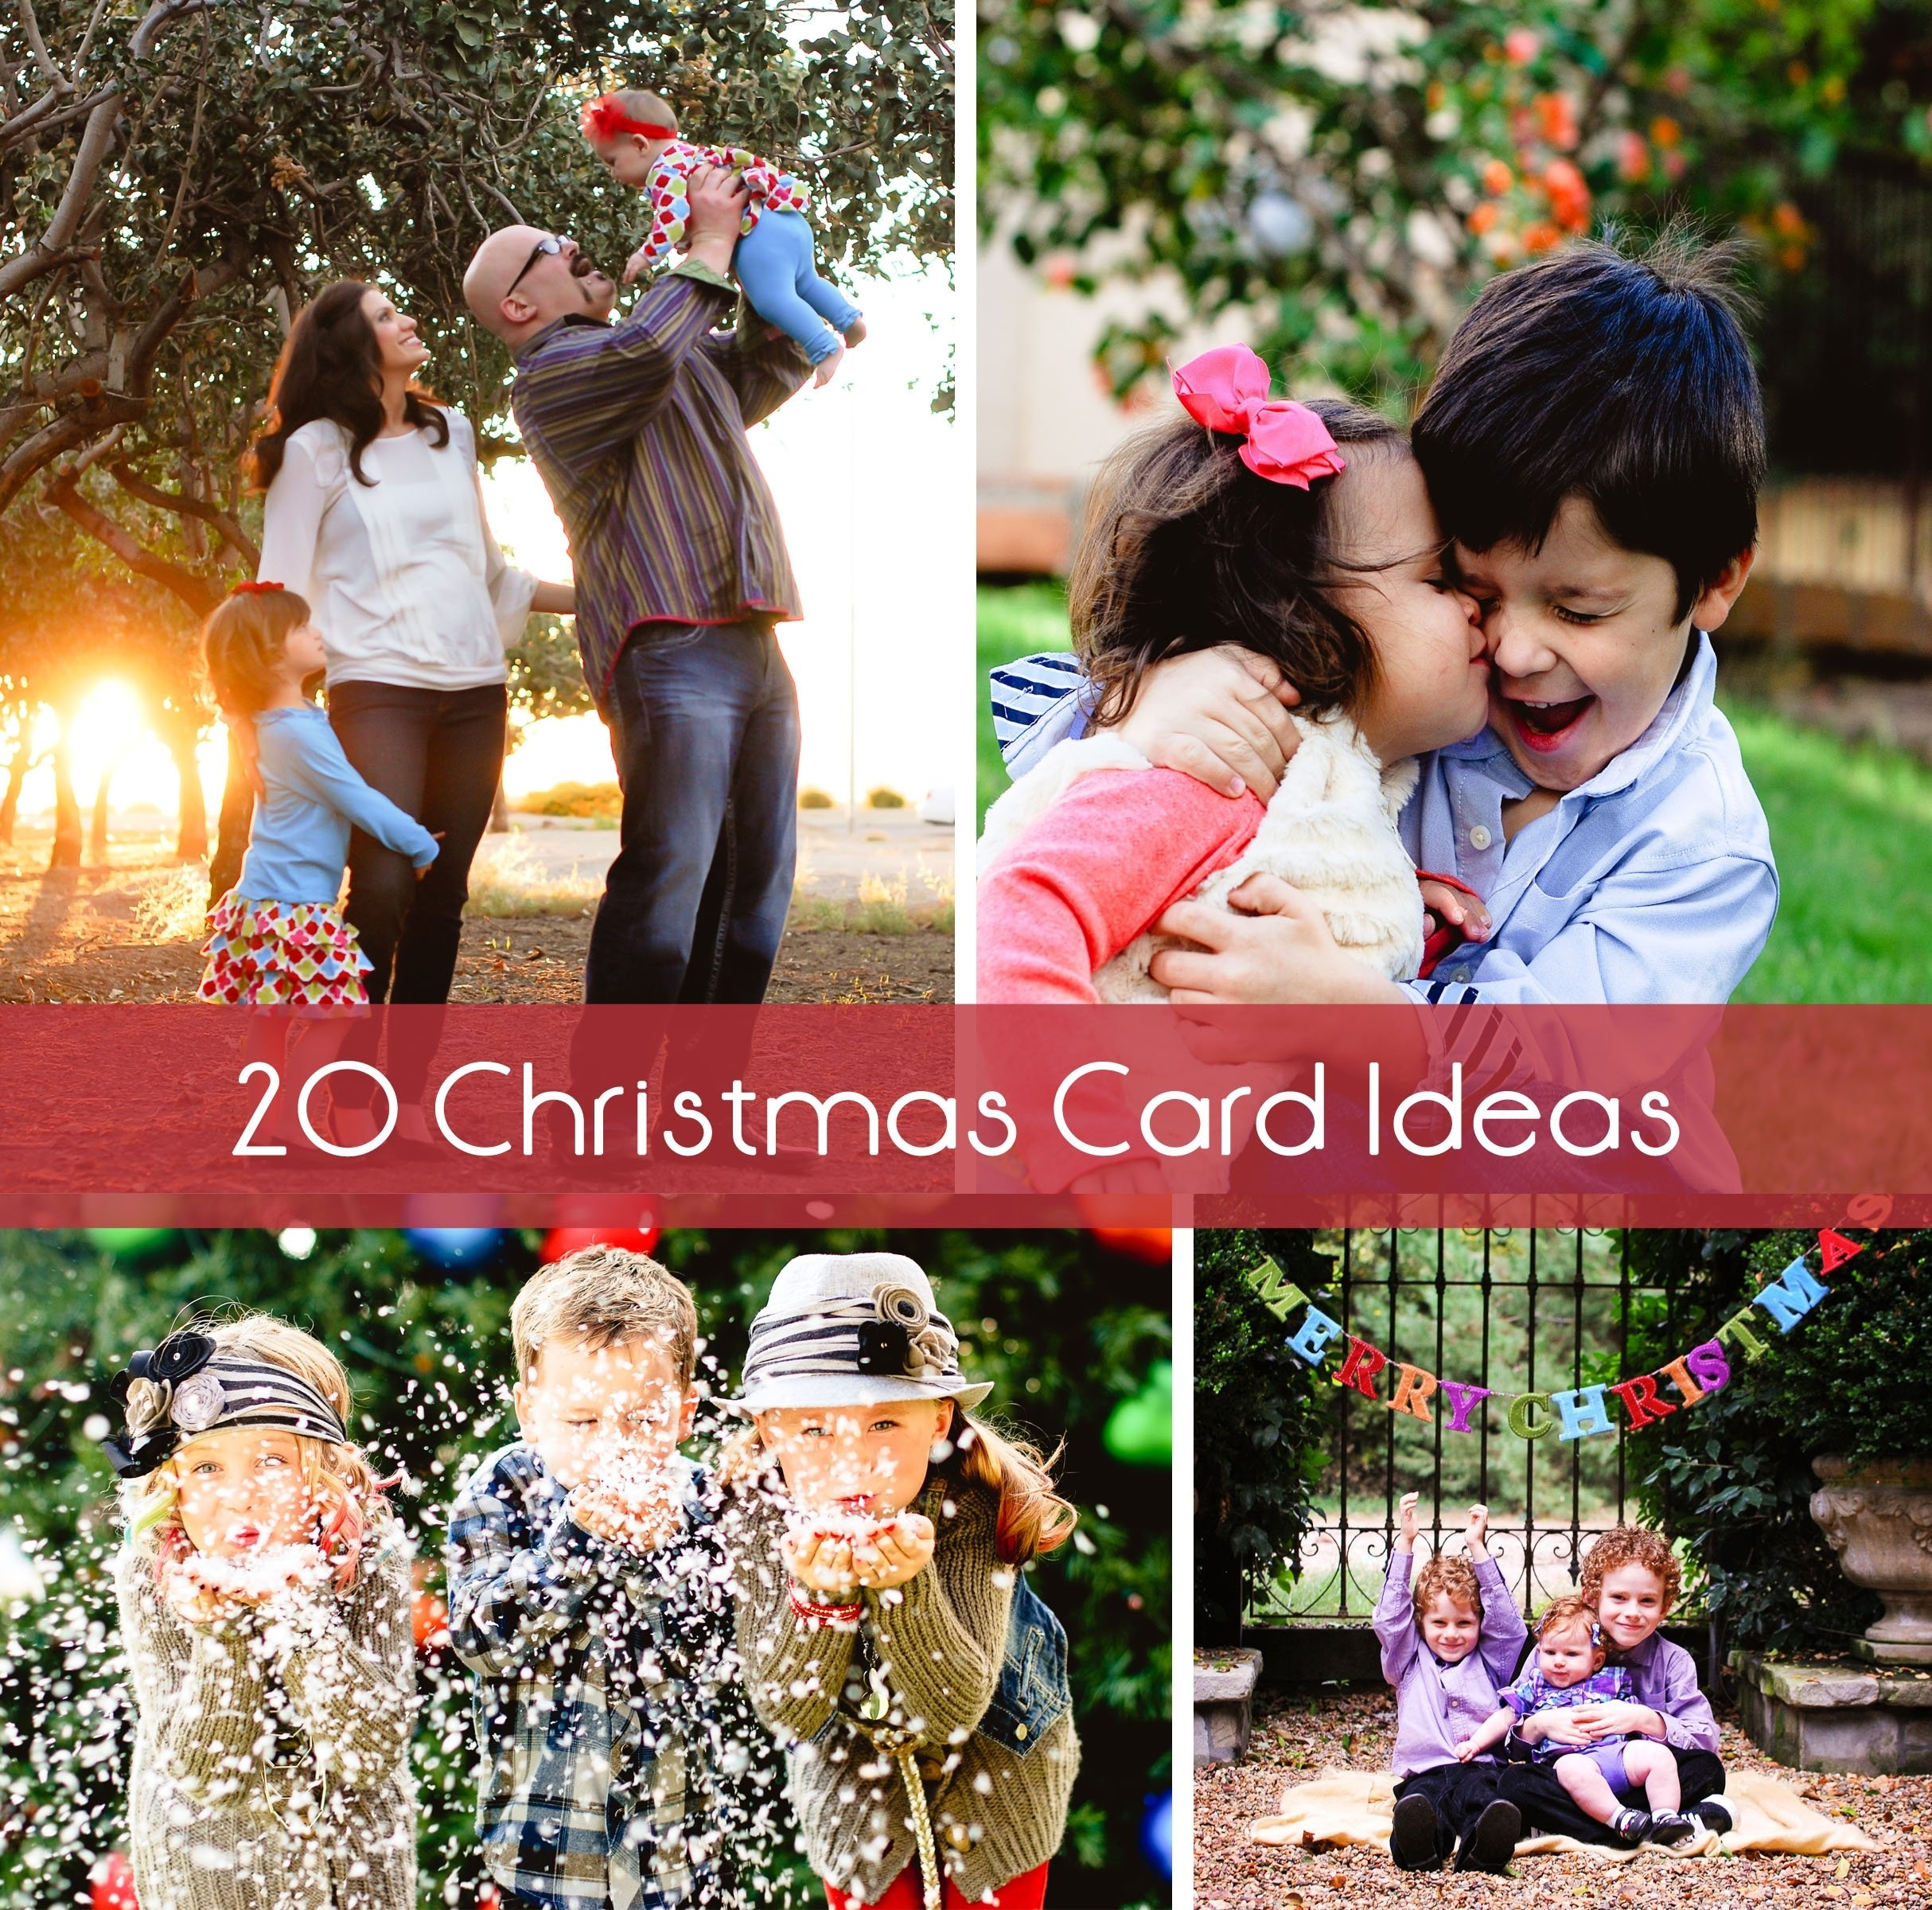 10 Gorgeous Funny Christmas Card Ideas Kids 20 christmas card ideas 3